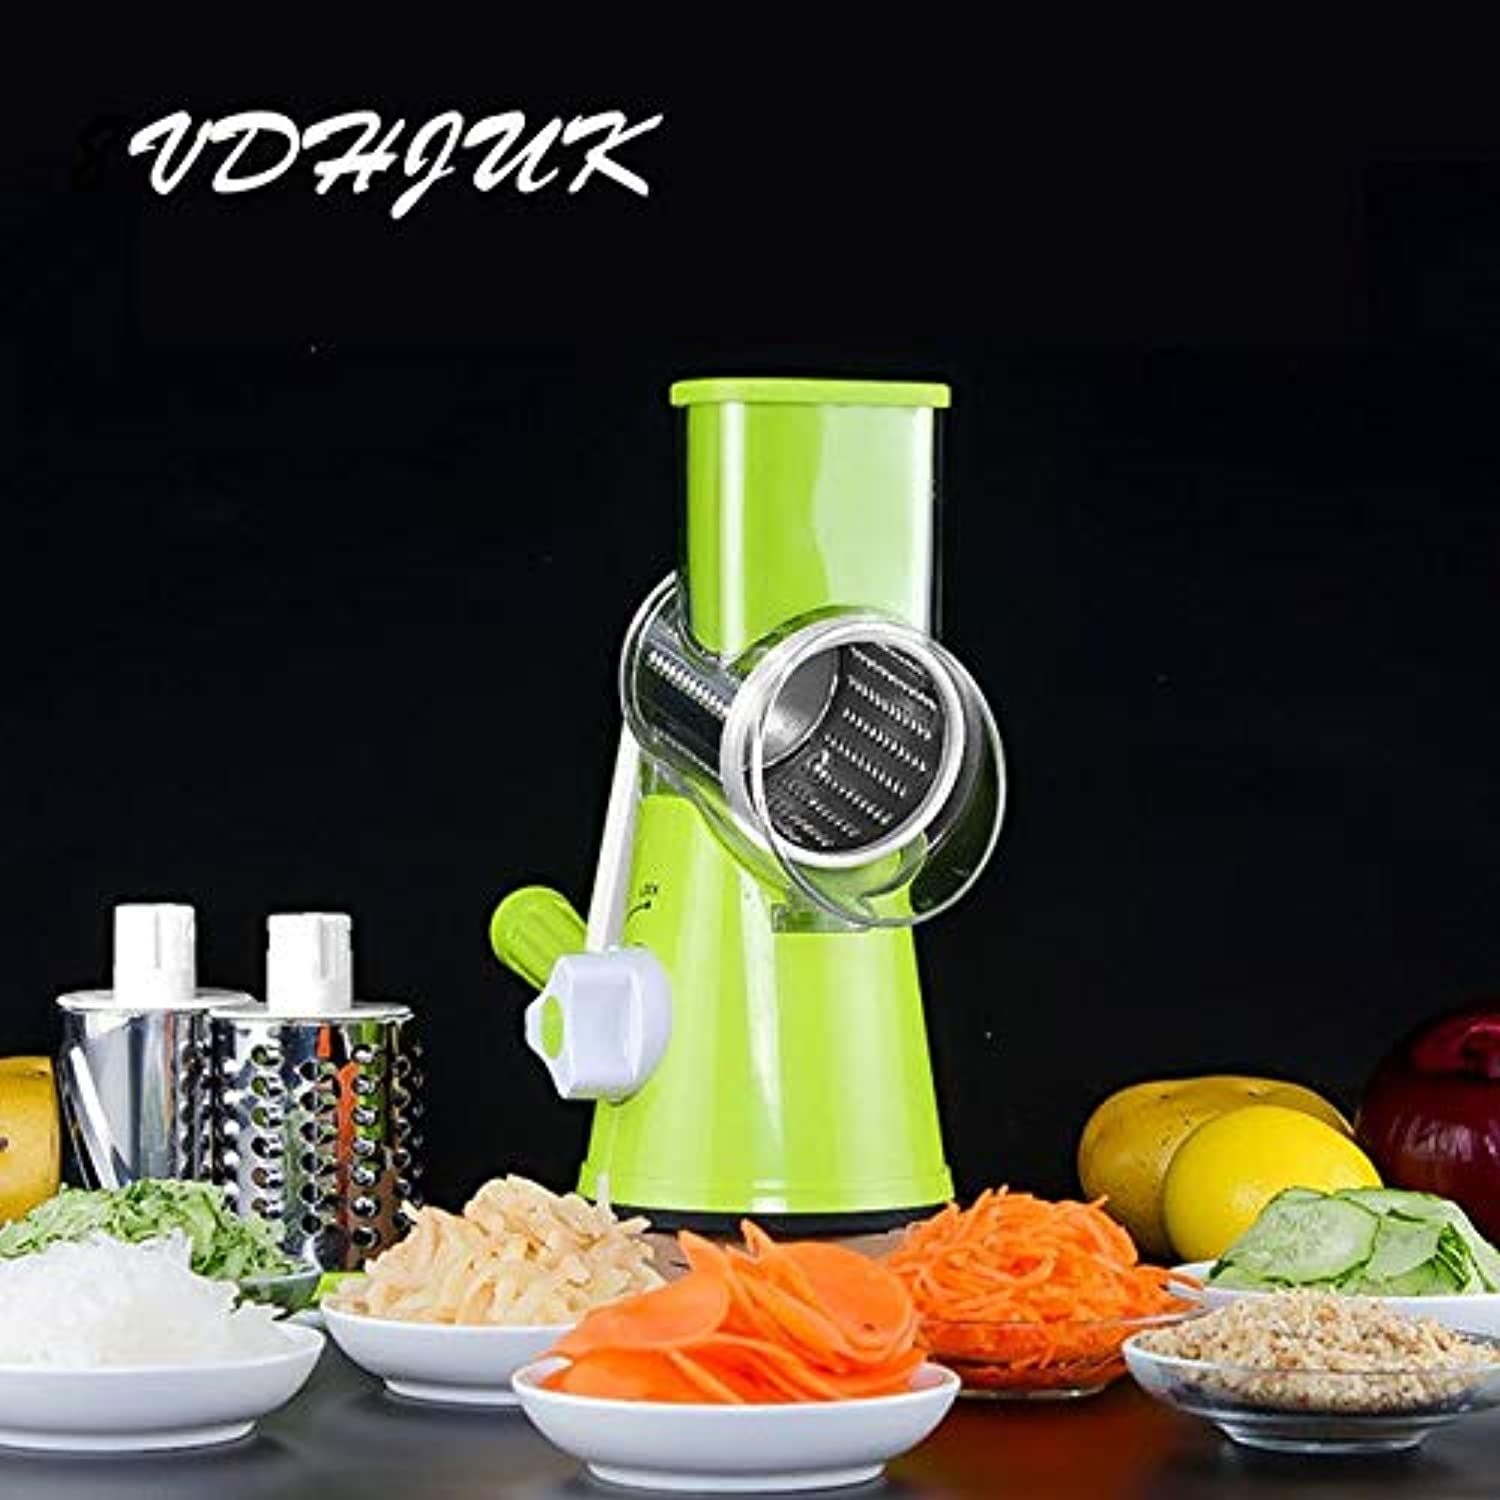 Farmerly 2018 High Quality Multifunctional Manual Vegetable Spiral Slicer Chopper Slicer Grater Clever Vegetable Cutter Kitchen Tools   Green